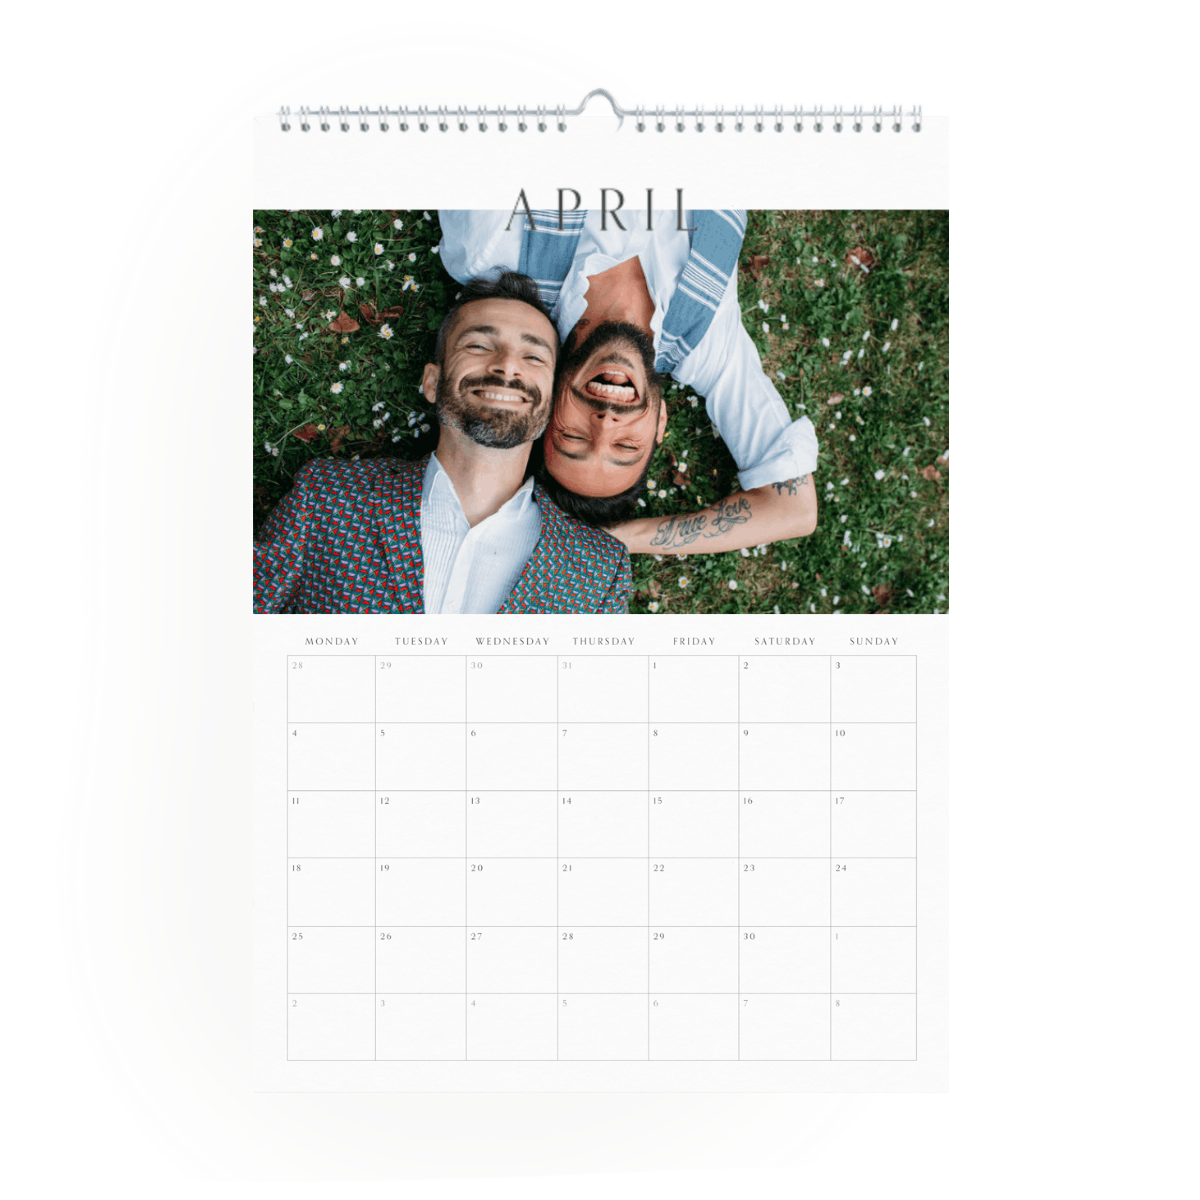 Https%3a%2f%2fwww.papier.com%2fproduct image%2f89405%2f76%2f2020 photo calendar 22424 april 1570714904.png?ixlib=rb 1.1